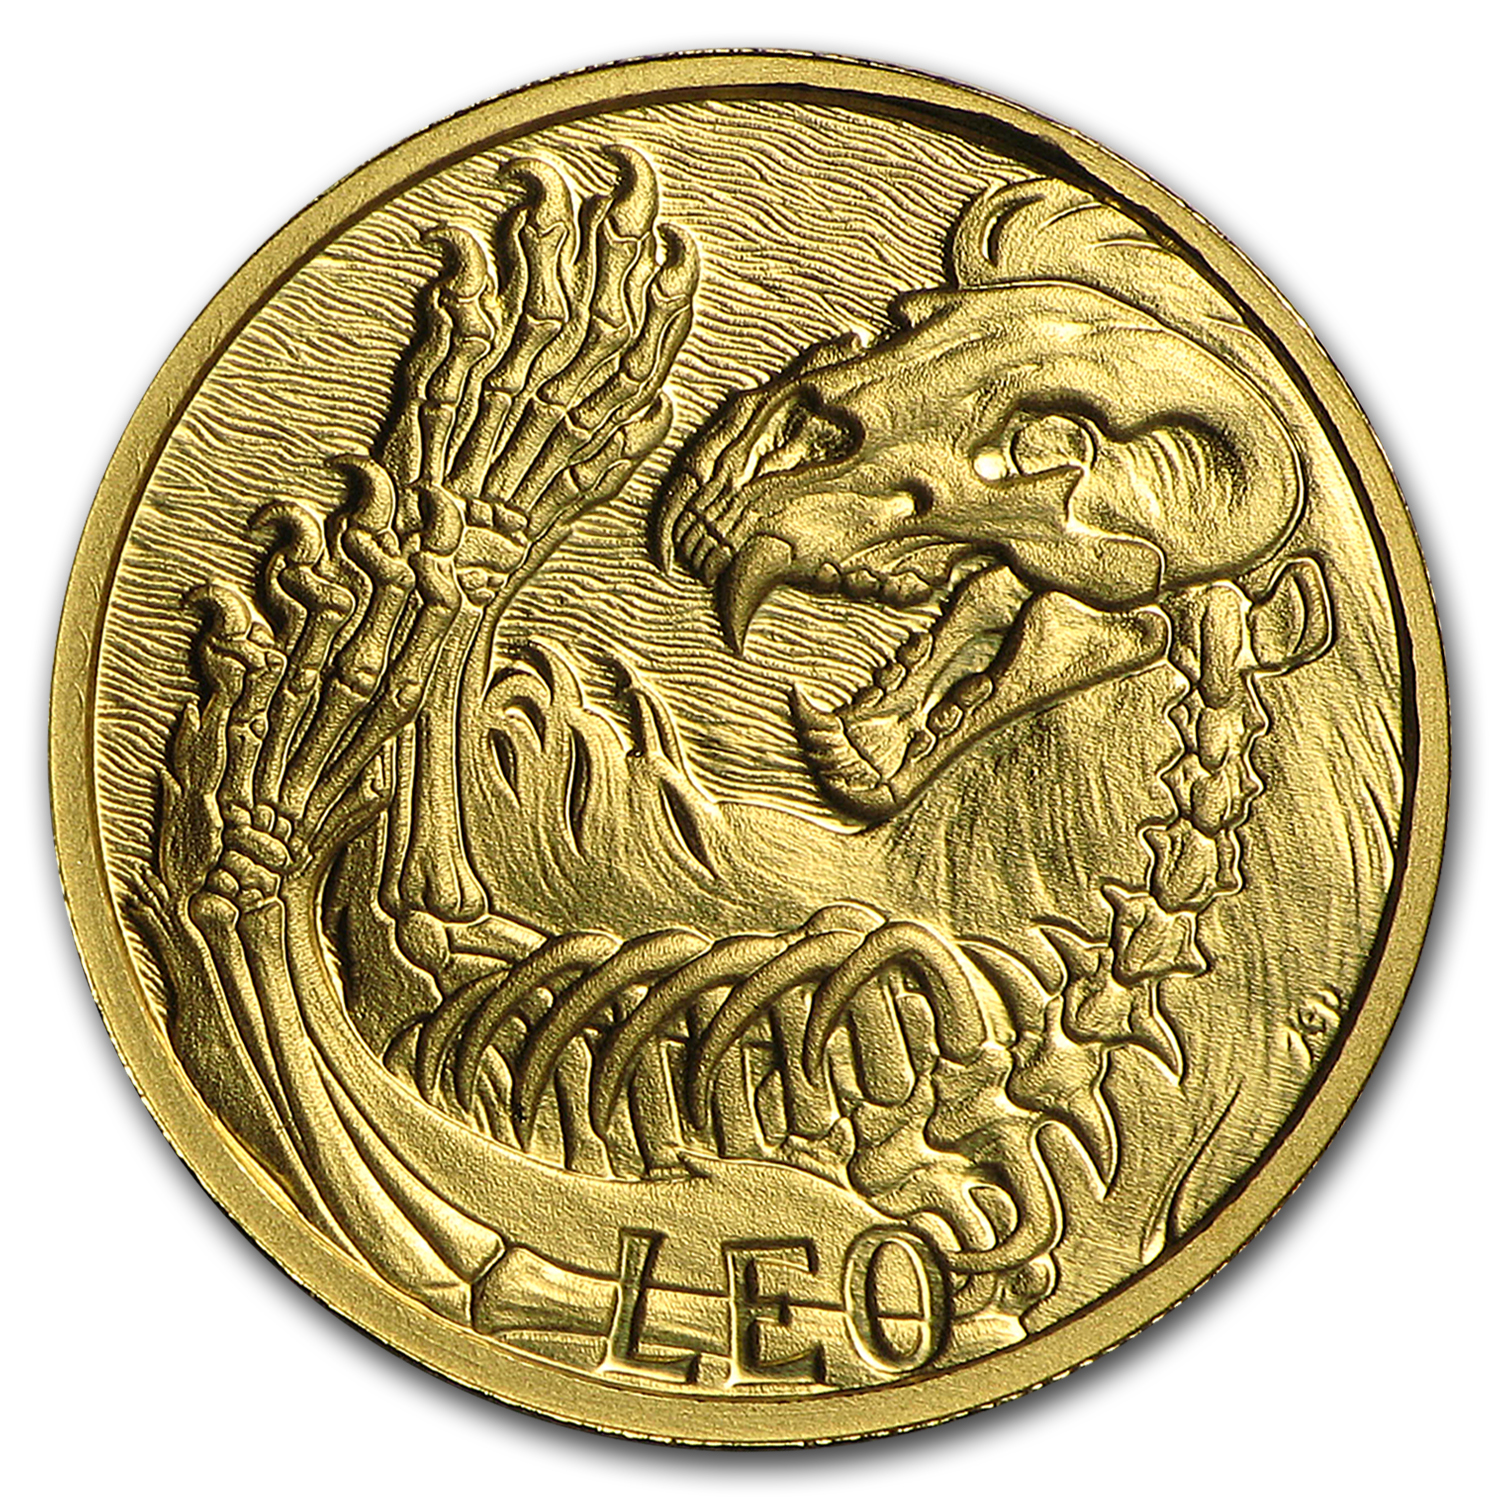 1/10 oz Gold Proof Round - Zodiac Skull Series (Leo)